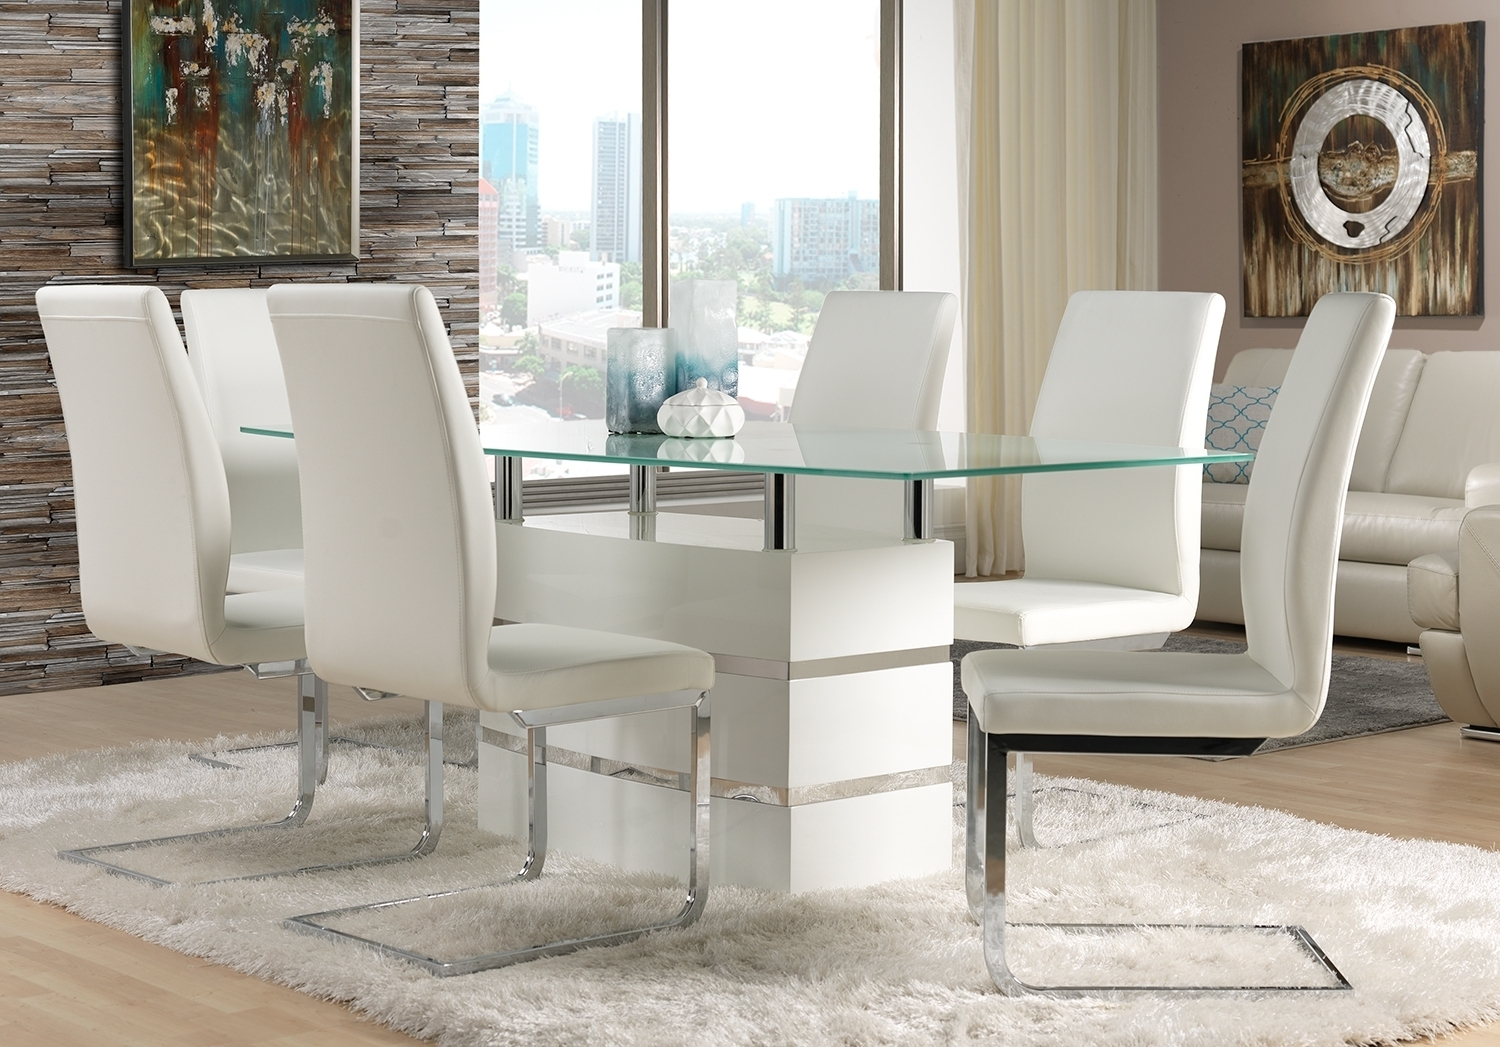 Chair Fabulous Glass Dining Table And White Leather Dining Chair With Favorite White Glass Dining Tables And Chairs (View 5 of 25)